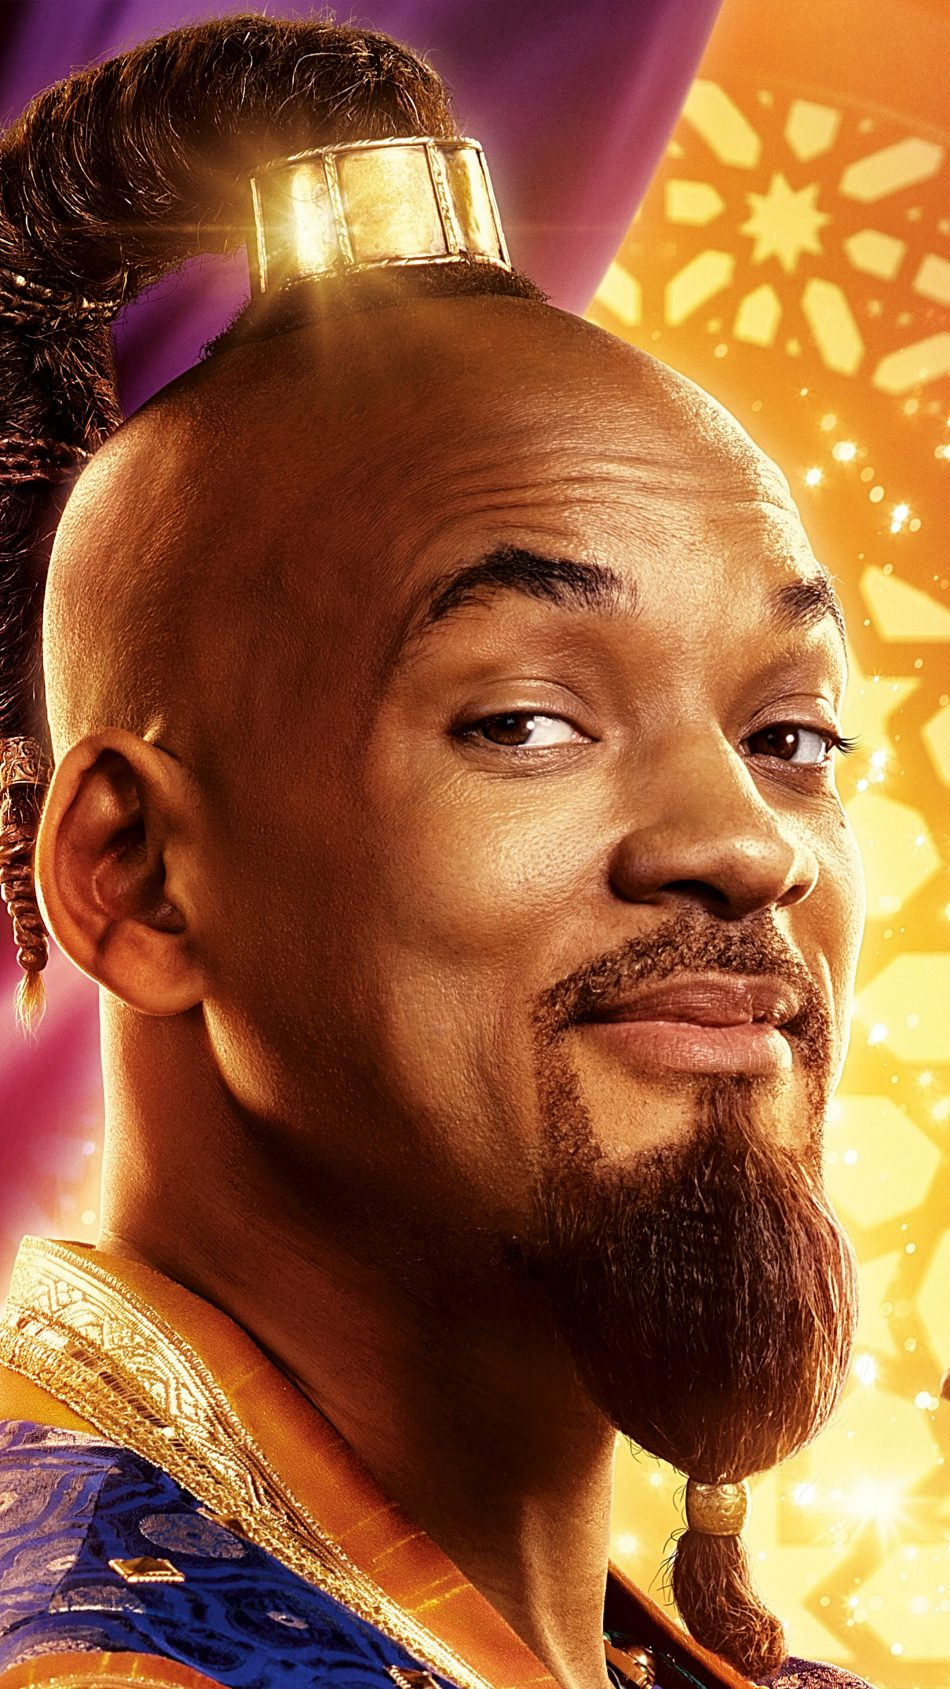 Will Smith In Aladdin 2019 4K Ultra HD Mobile Wallpaper